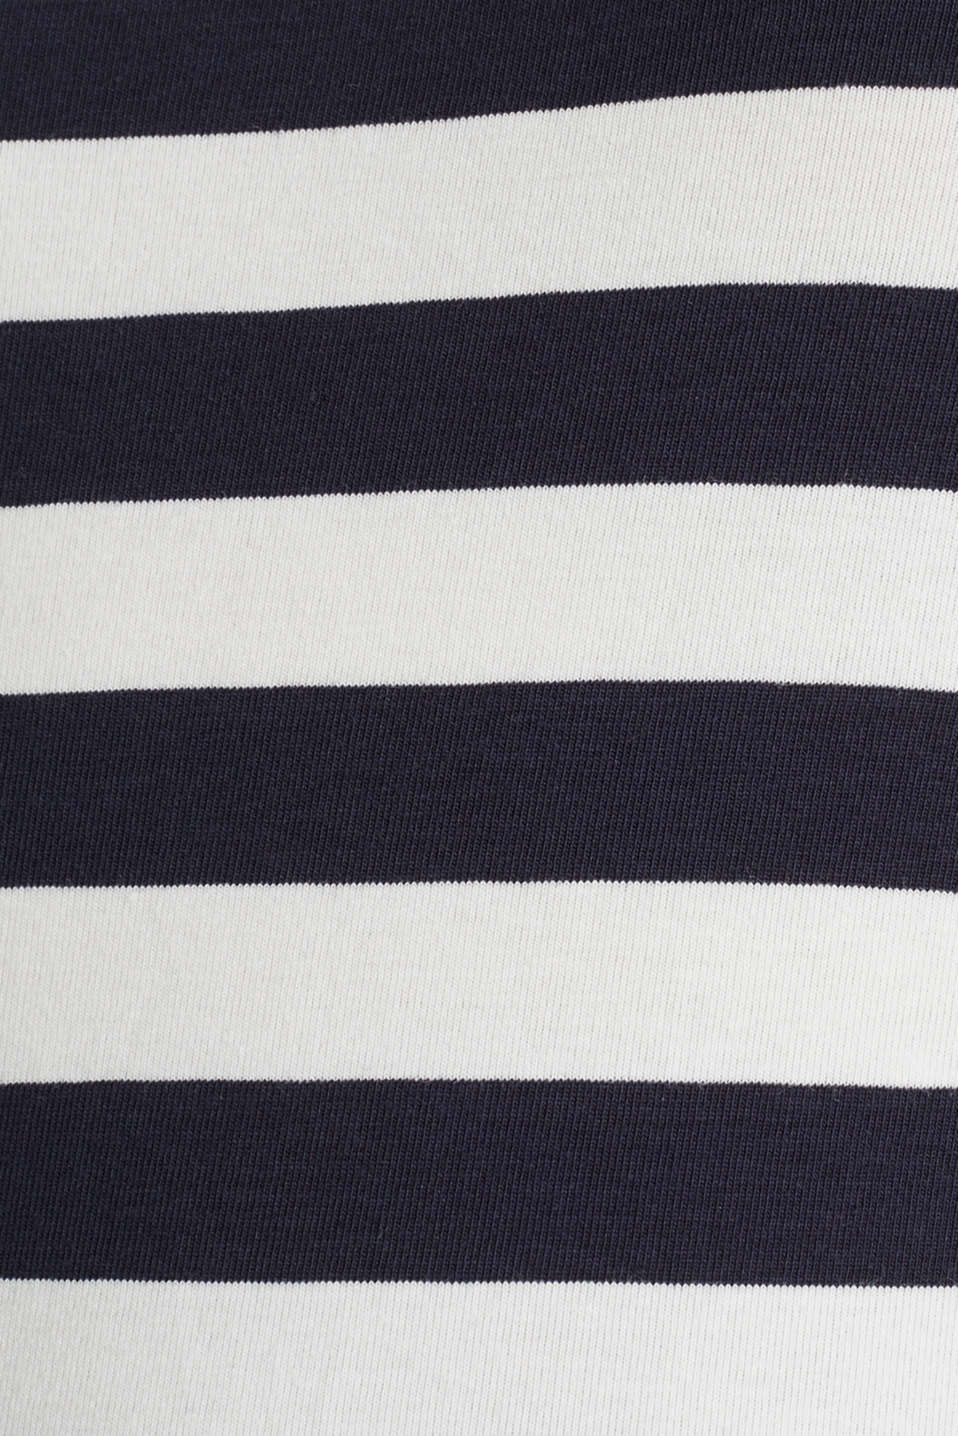 Striped, stretch cotton T-shirt, NAVY, detail image number 4